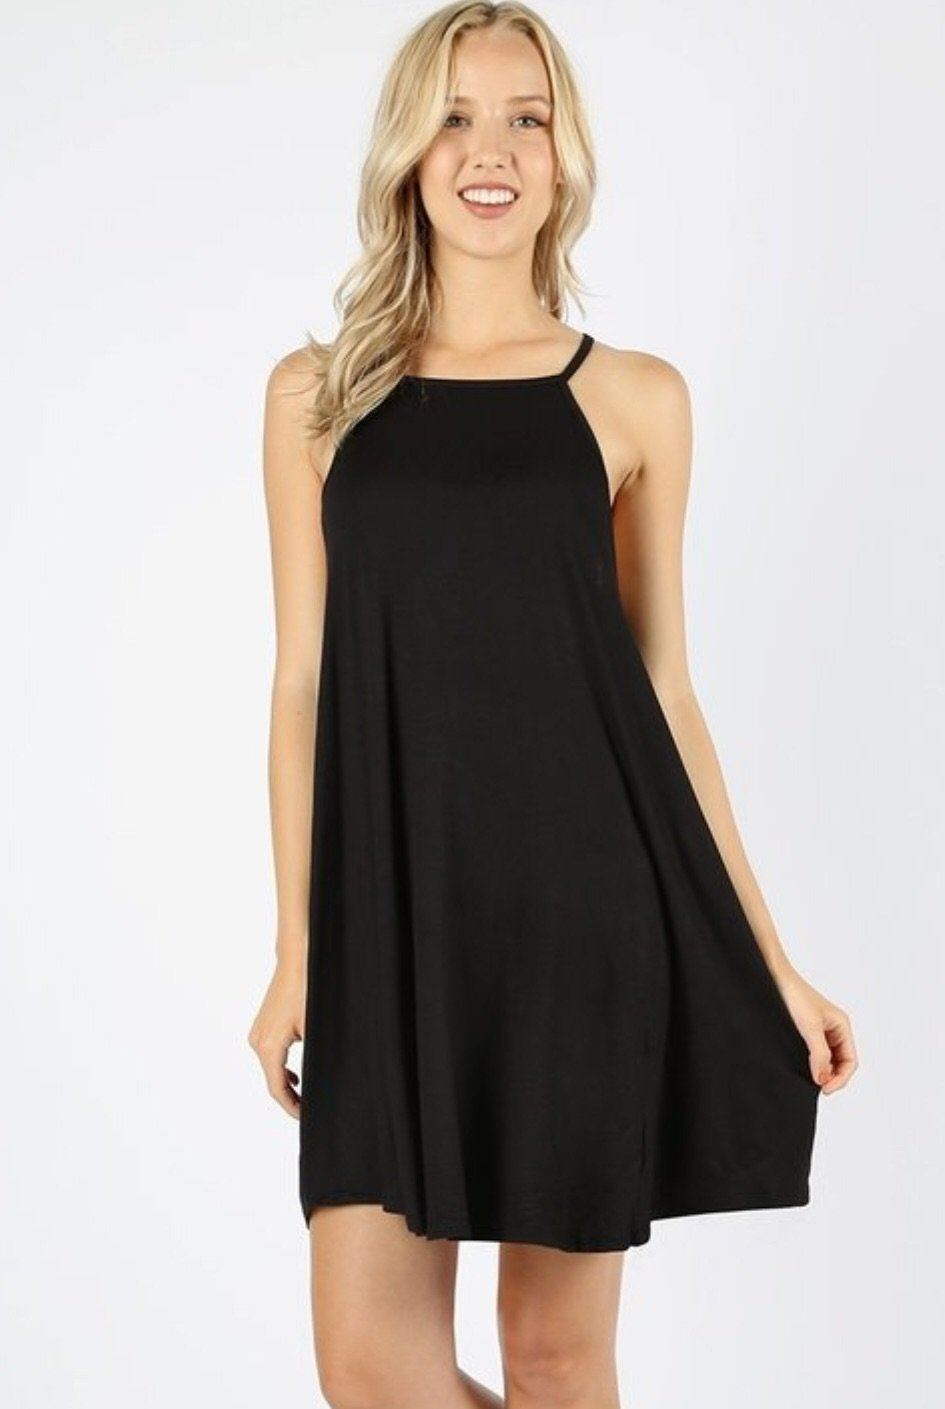 MomMe And More Women's Black High Neck Spaghetti Strap Dress